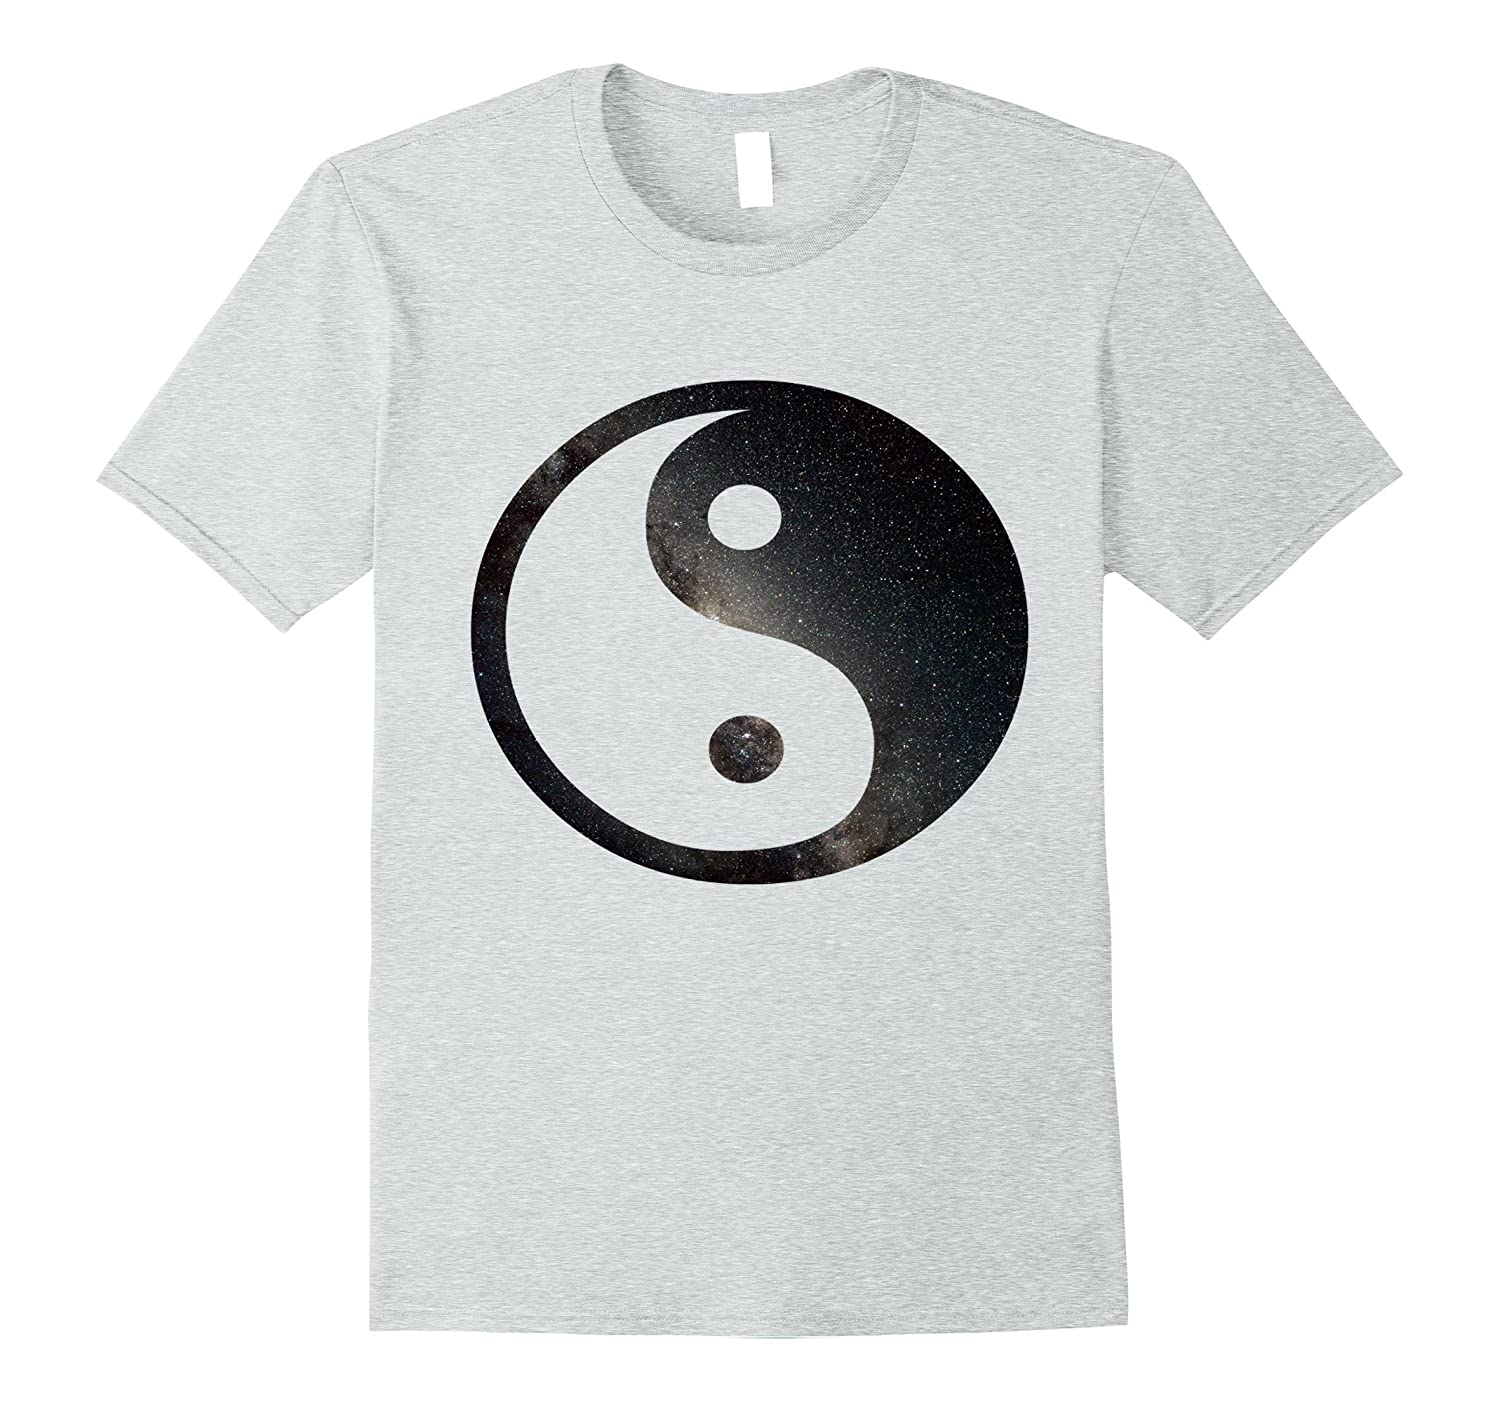 Awesome Space Yin Yang T-Shirt - Mens & Womens Sizes-FL